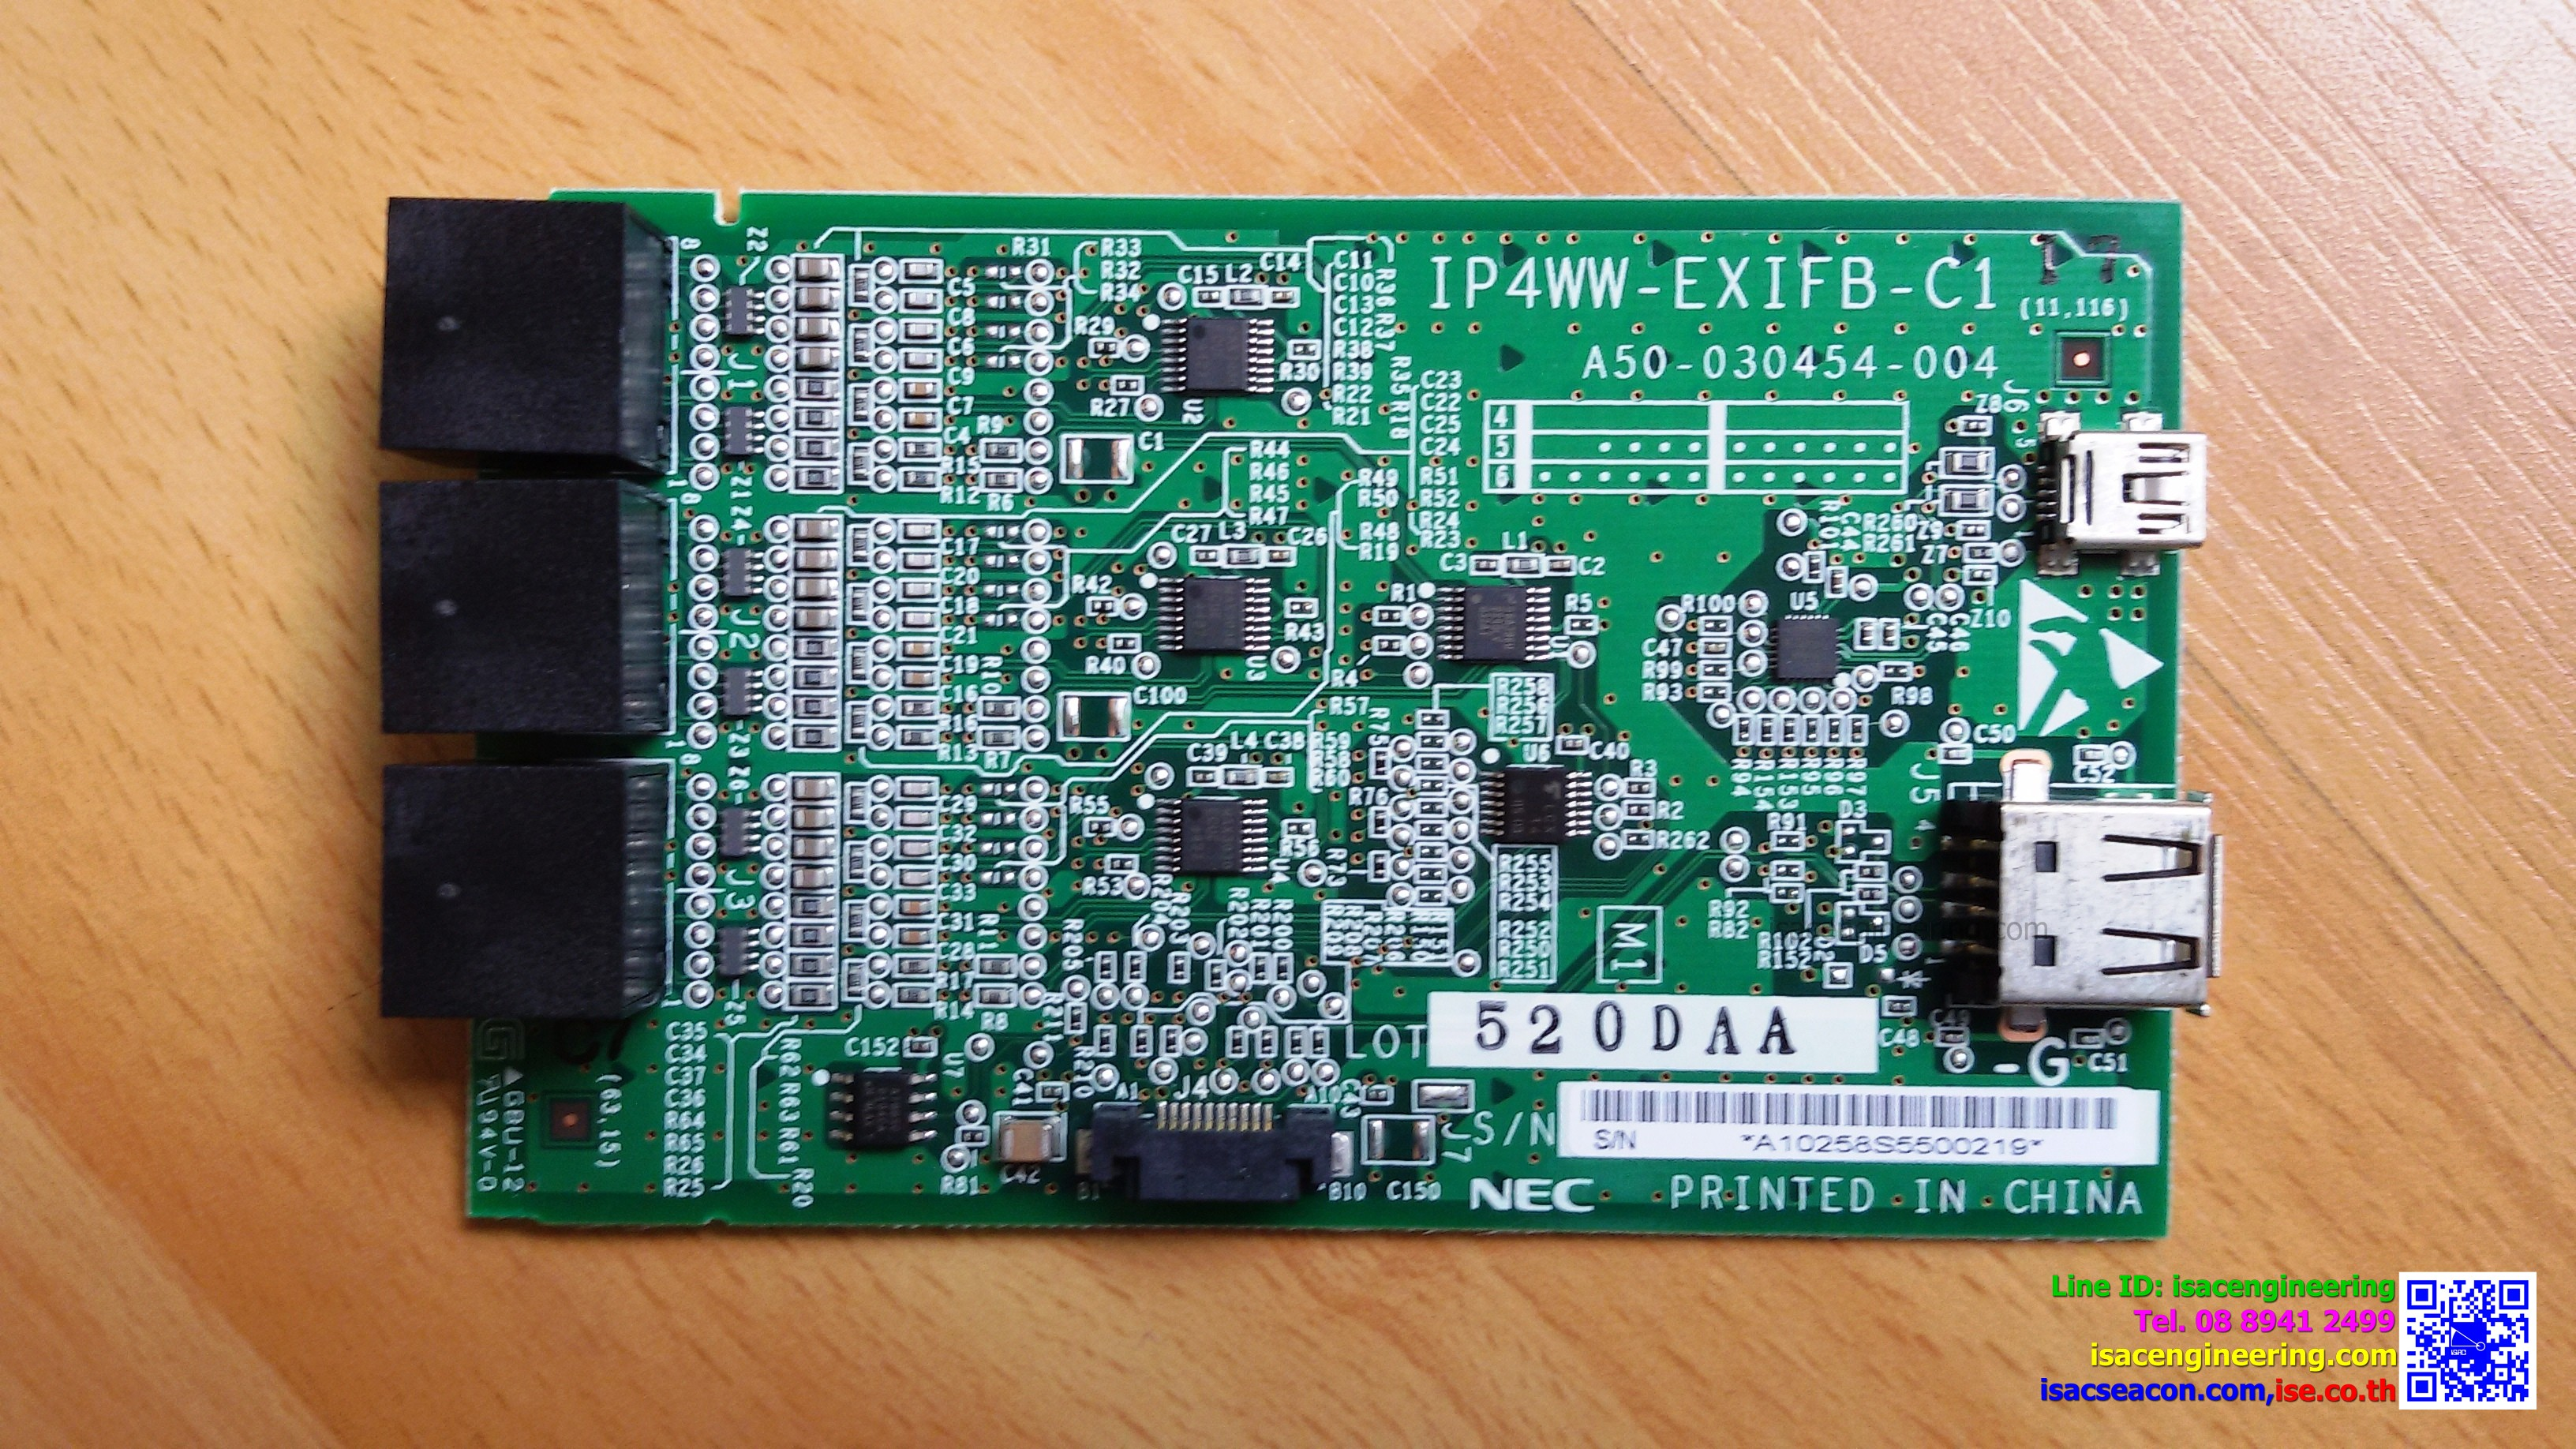 IP4WW-EXIFB-C1 (Bus Cardfor Main KSU to Connect EXP KSUs)